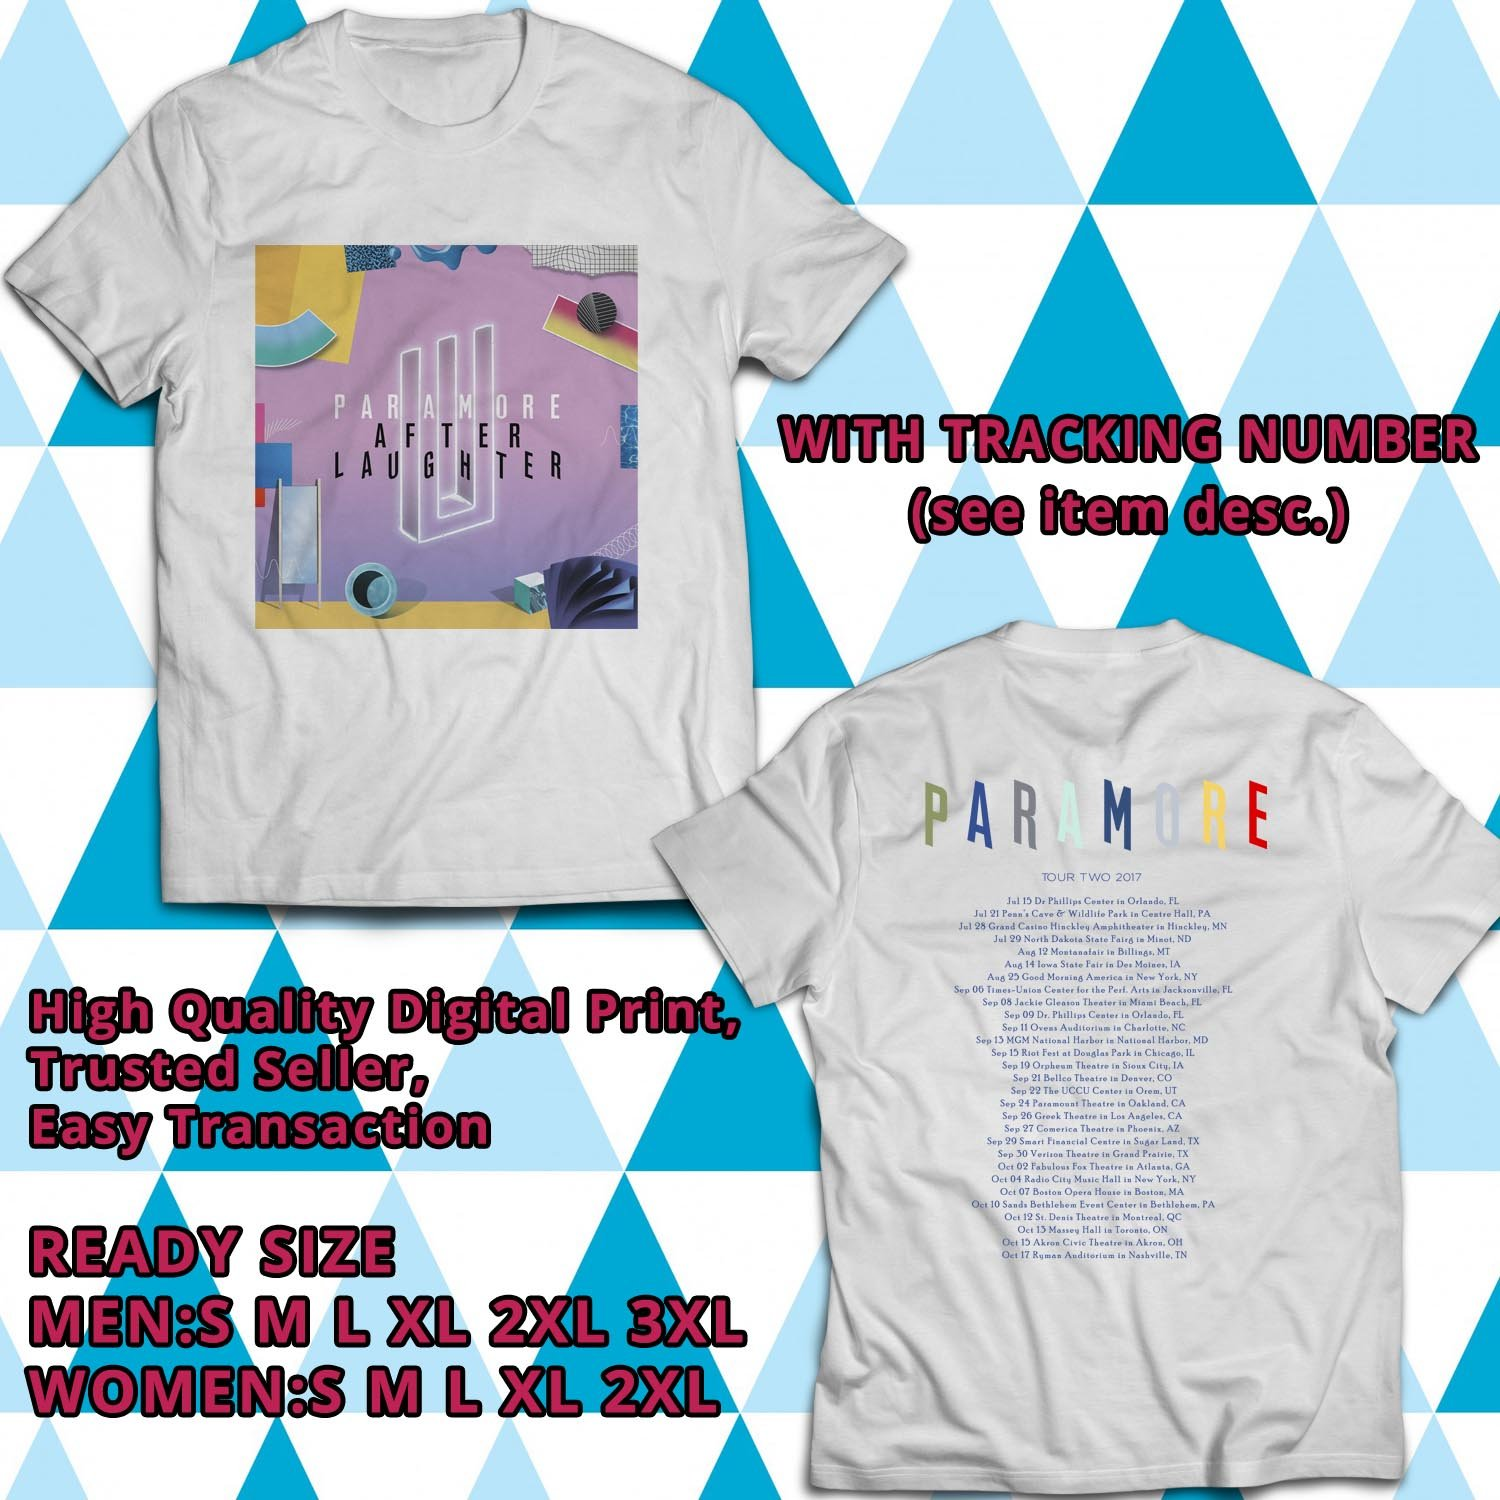 HITS PARAMORE AFTER LAUGHTER ALBUM TOUR TWO 2017 WHITE TEE'S 2SIDE MAN WOMEN ASTR